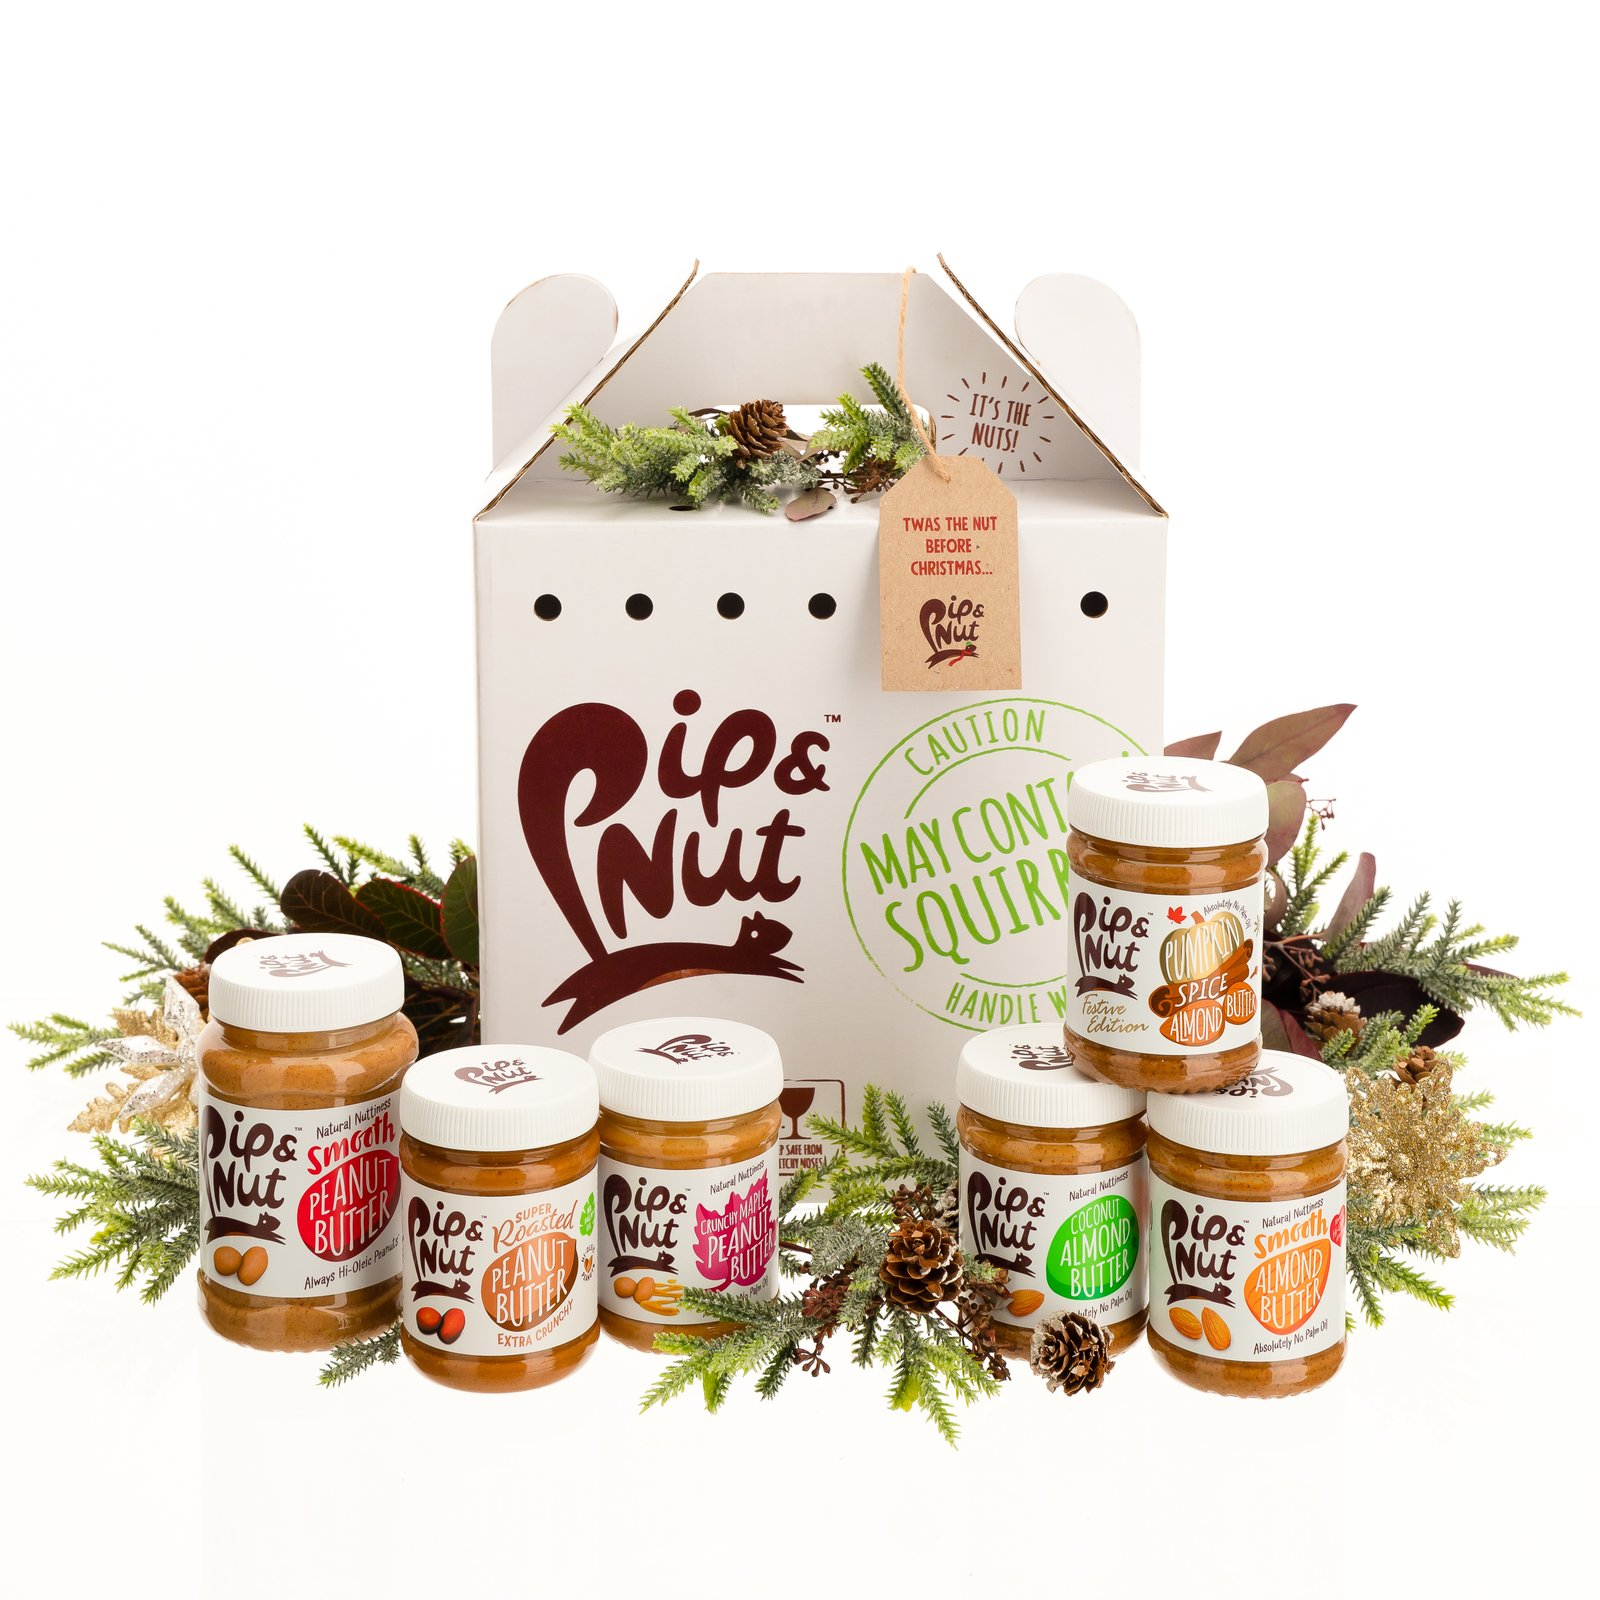 Christmas Gift Guide: Top 15 Gifts for Foodies, Christmas Gift Guide for foodies, Christmas Gift Guide for food lovers, foodies Christmas Gift Guide, best Christmas gifts for foodies